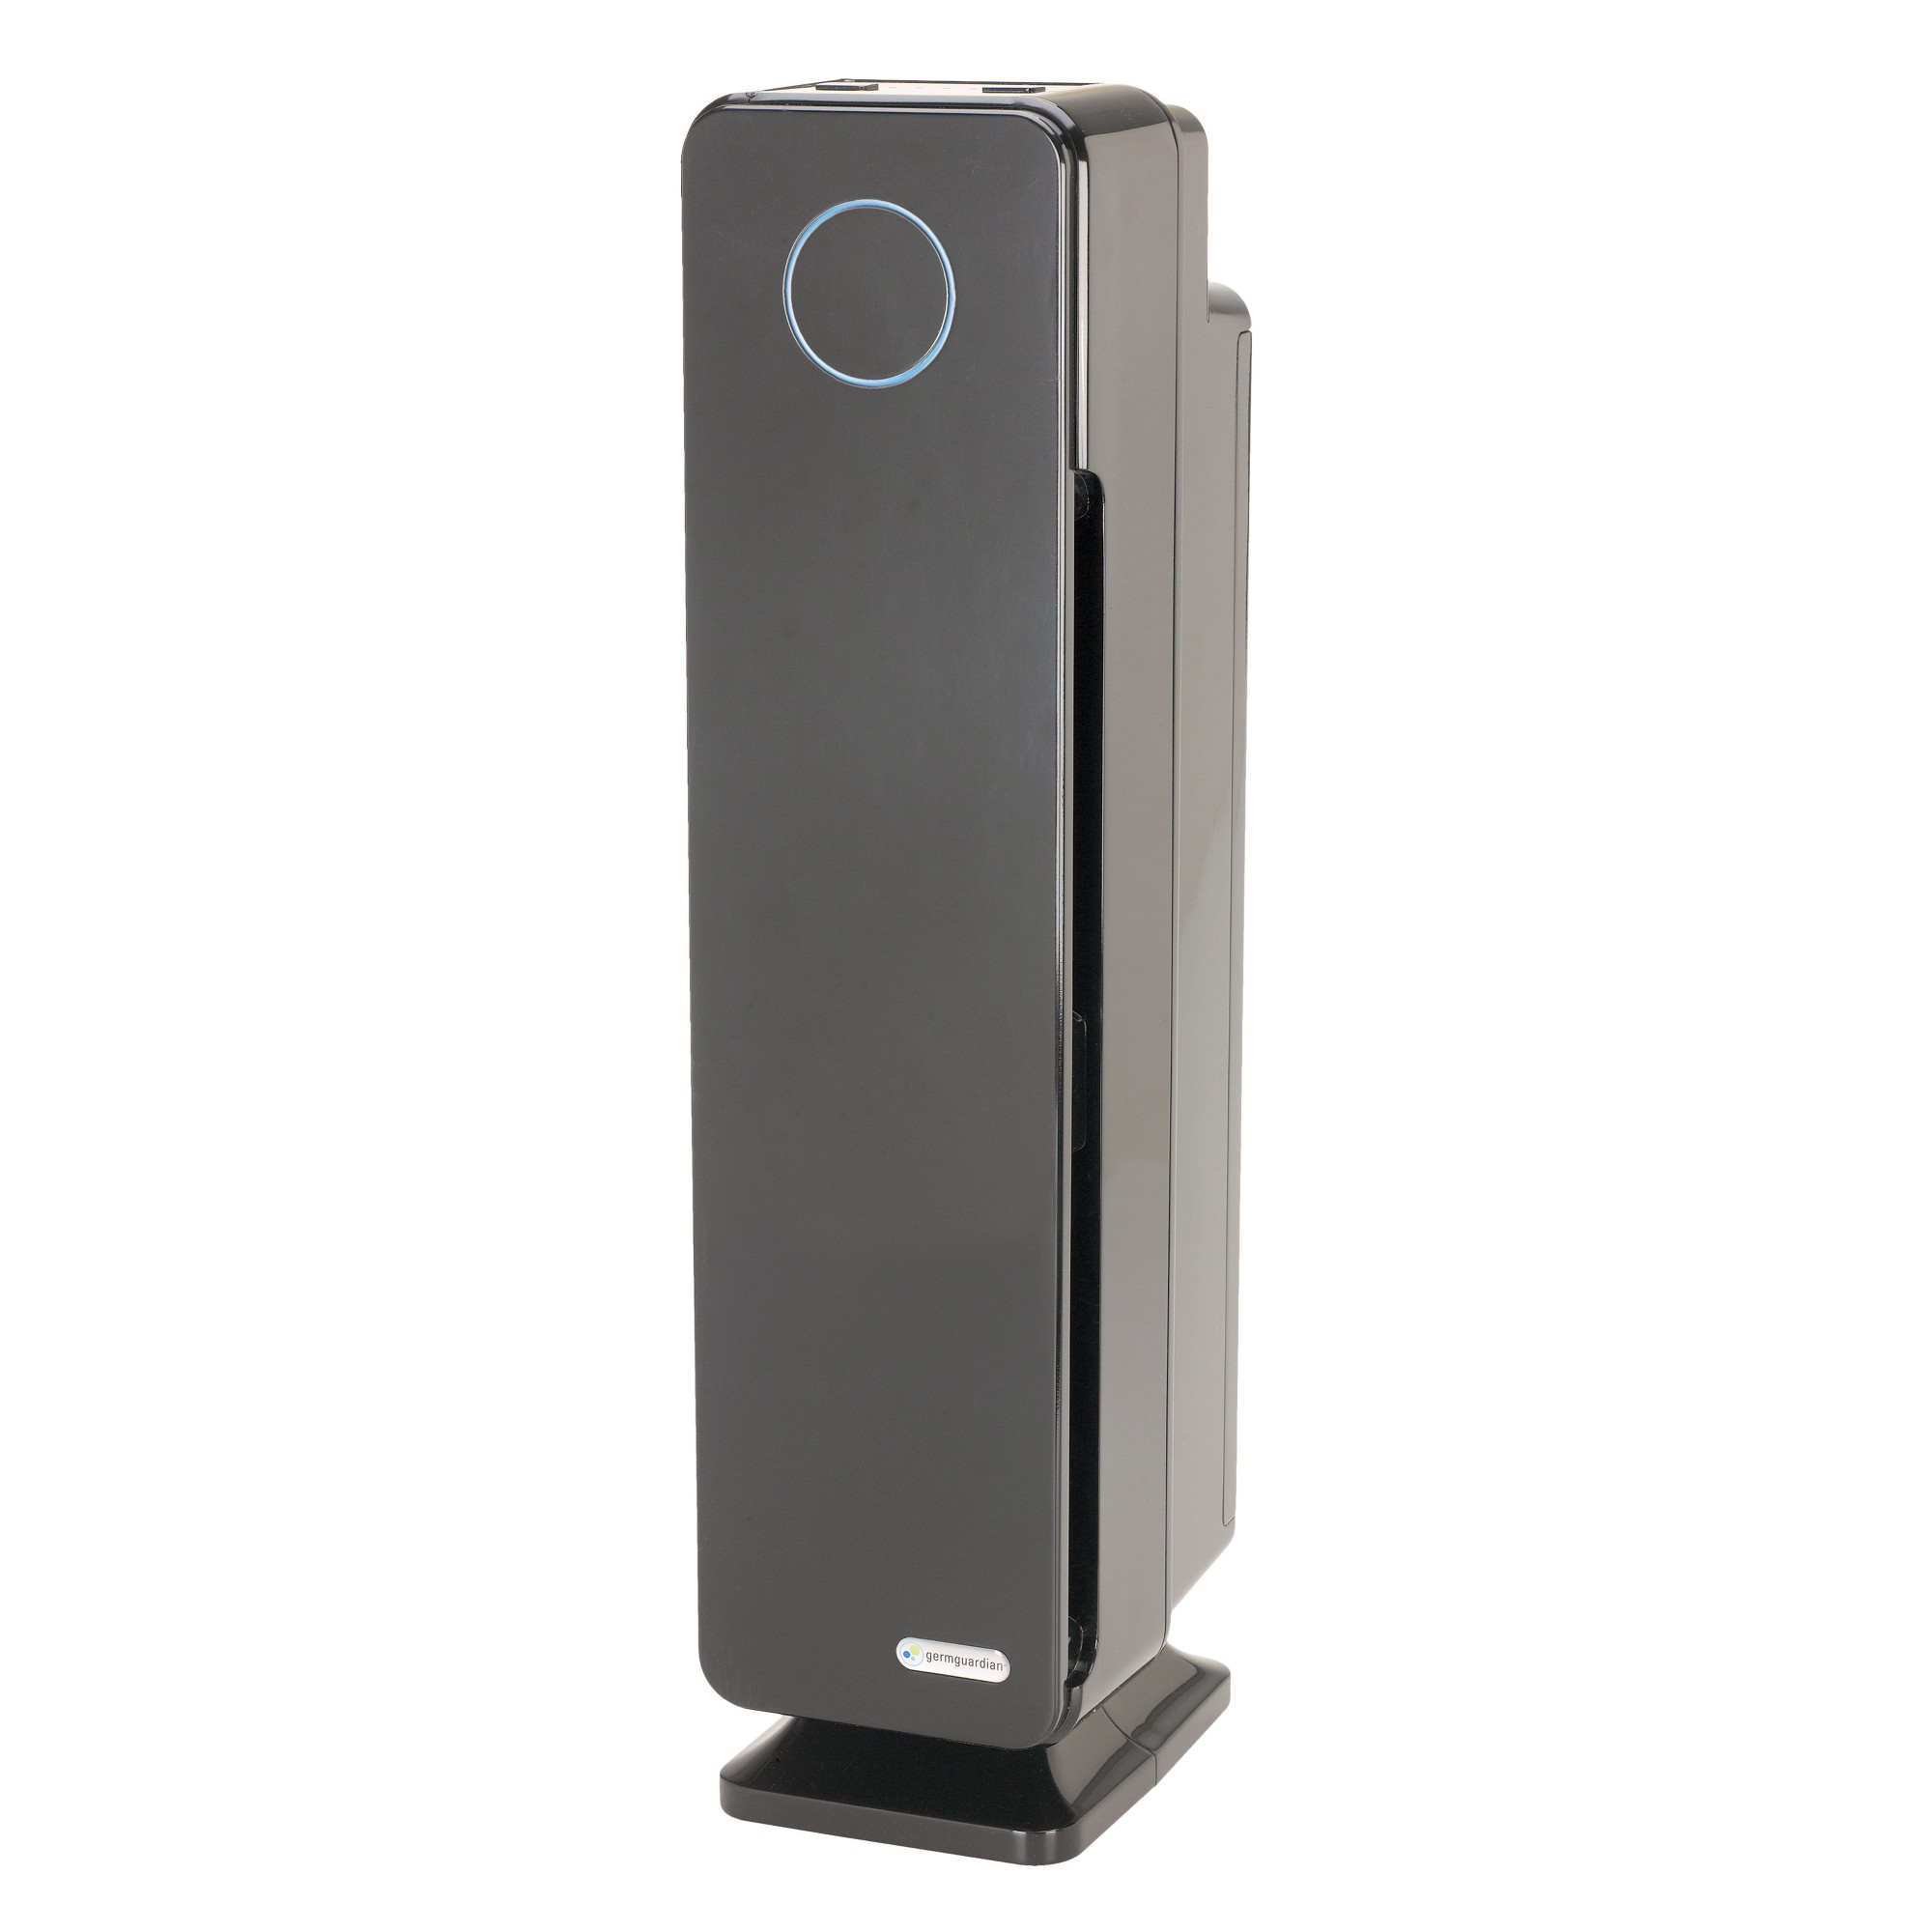 Germ guardian elite in true hepa air purifier acb black